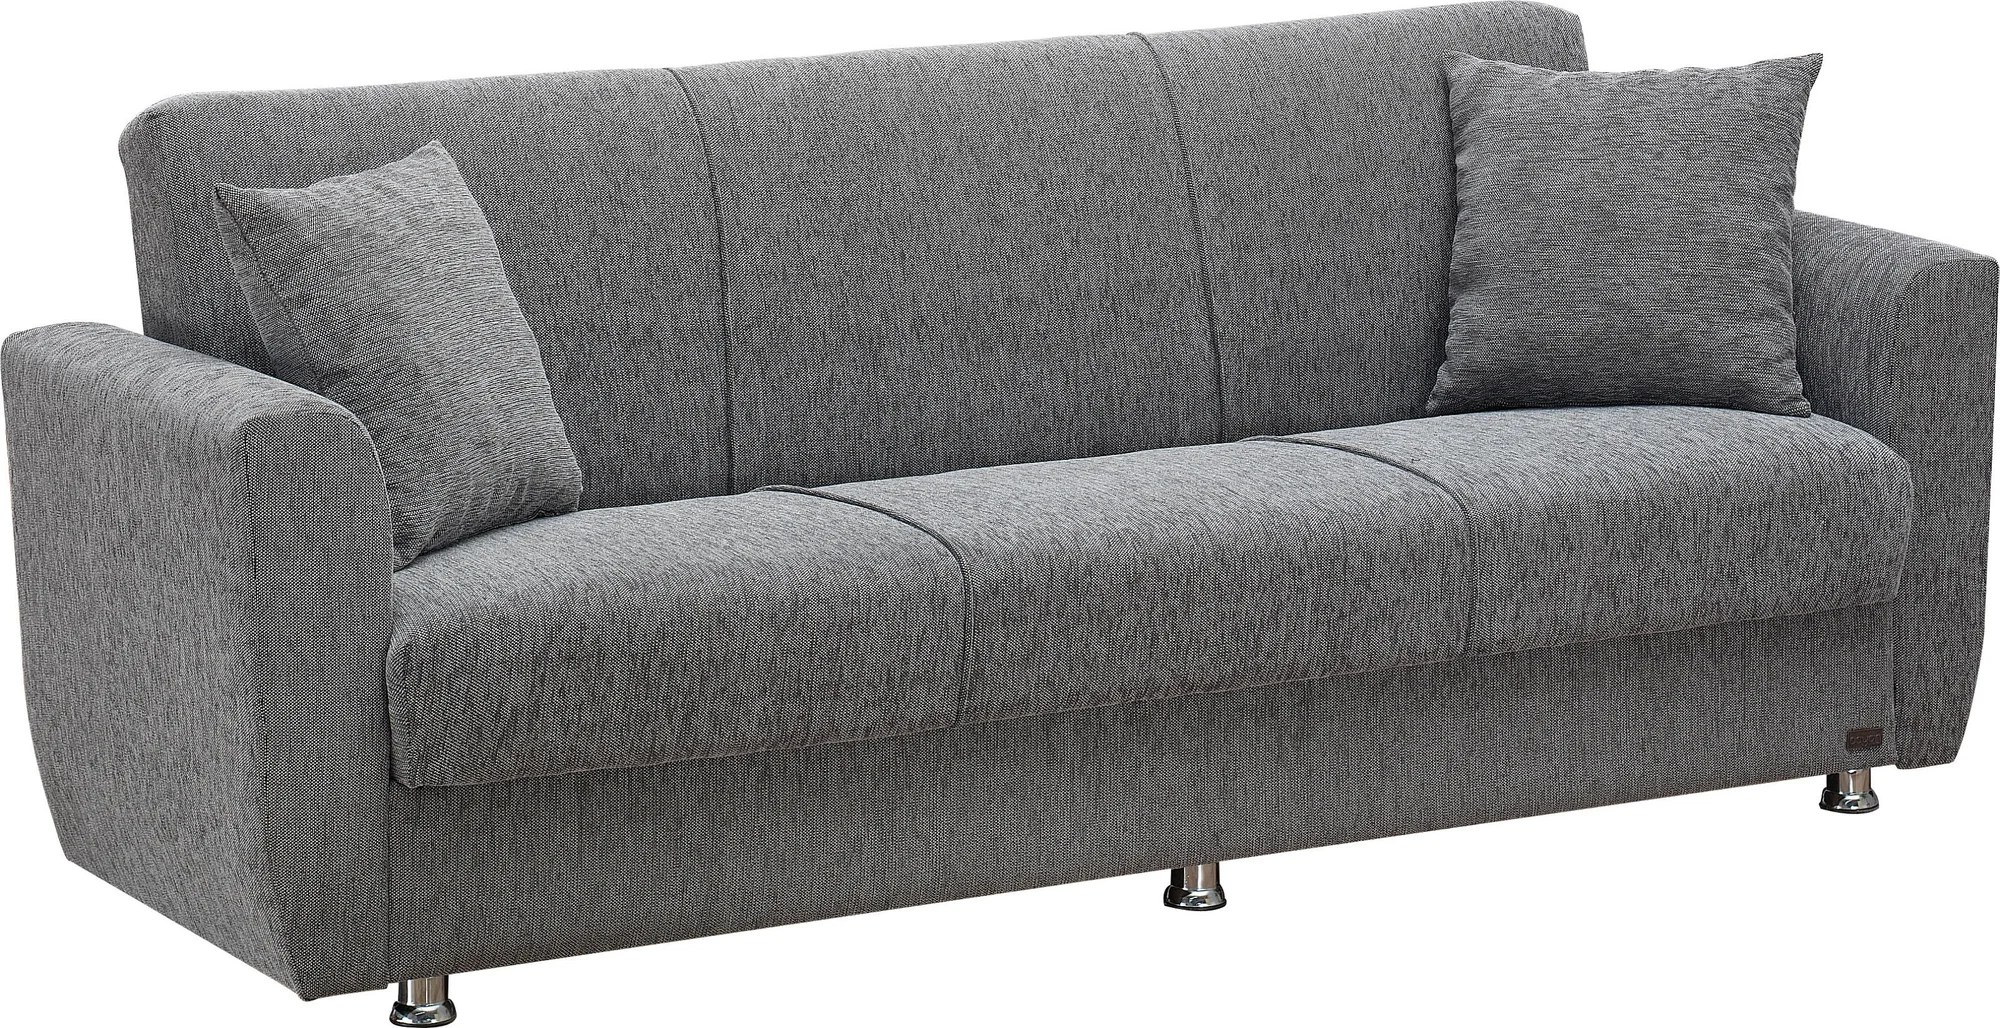 Sofas On Finance For Bad Credit Bad Credit Pay Weekly Sofas | Brokeasshome.com